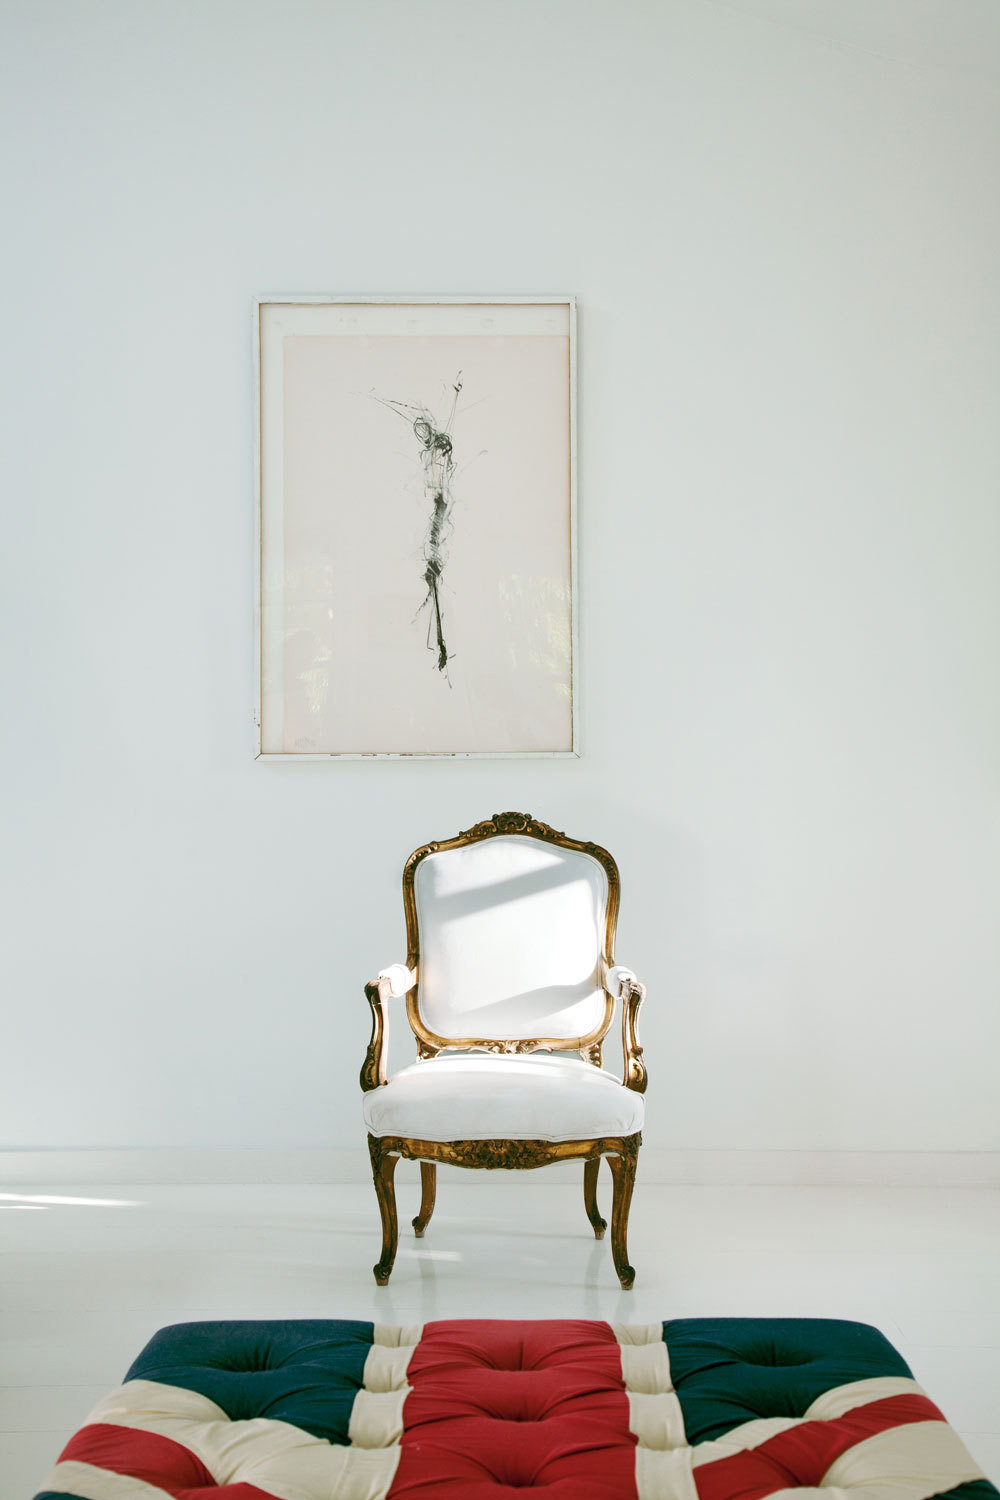 """The simplicity of this scene says so much. The dancer in her frame, the Union Jack ottoman, and the gilt-edged Louis XV chair, reupholstered in Sunbrella fabric to stand the test of wet bikini bottoms."""